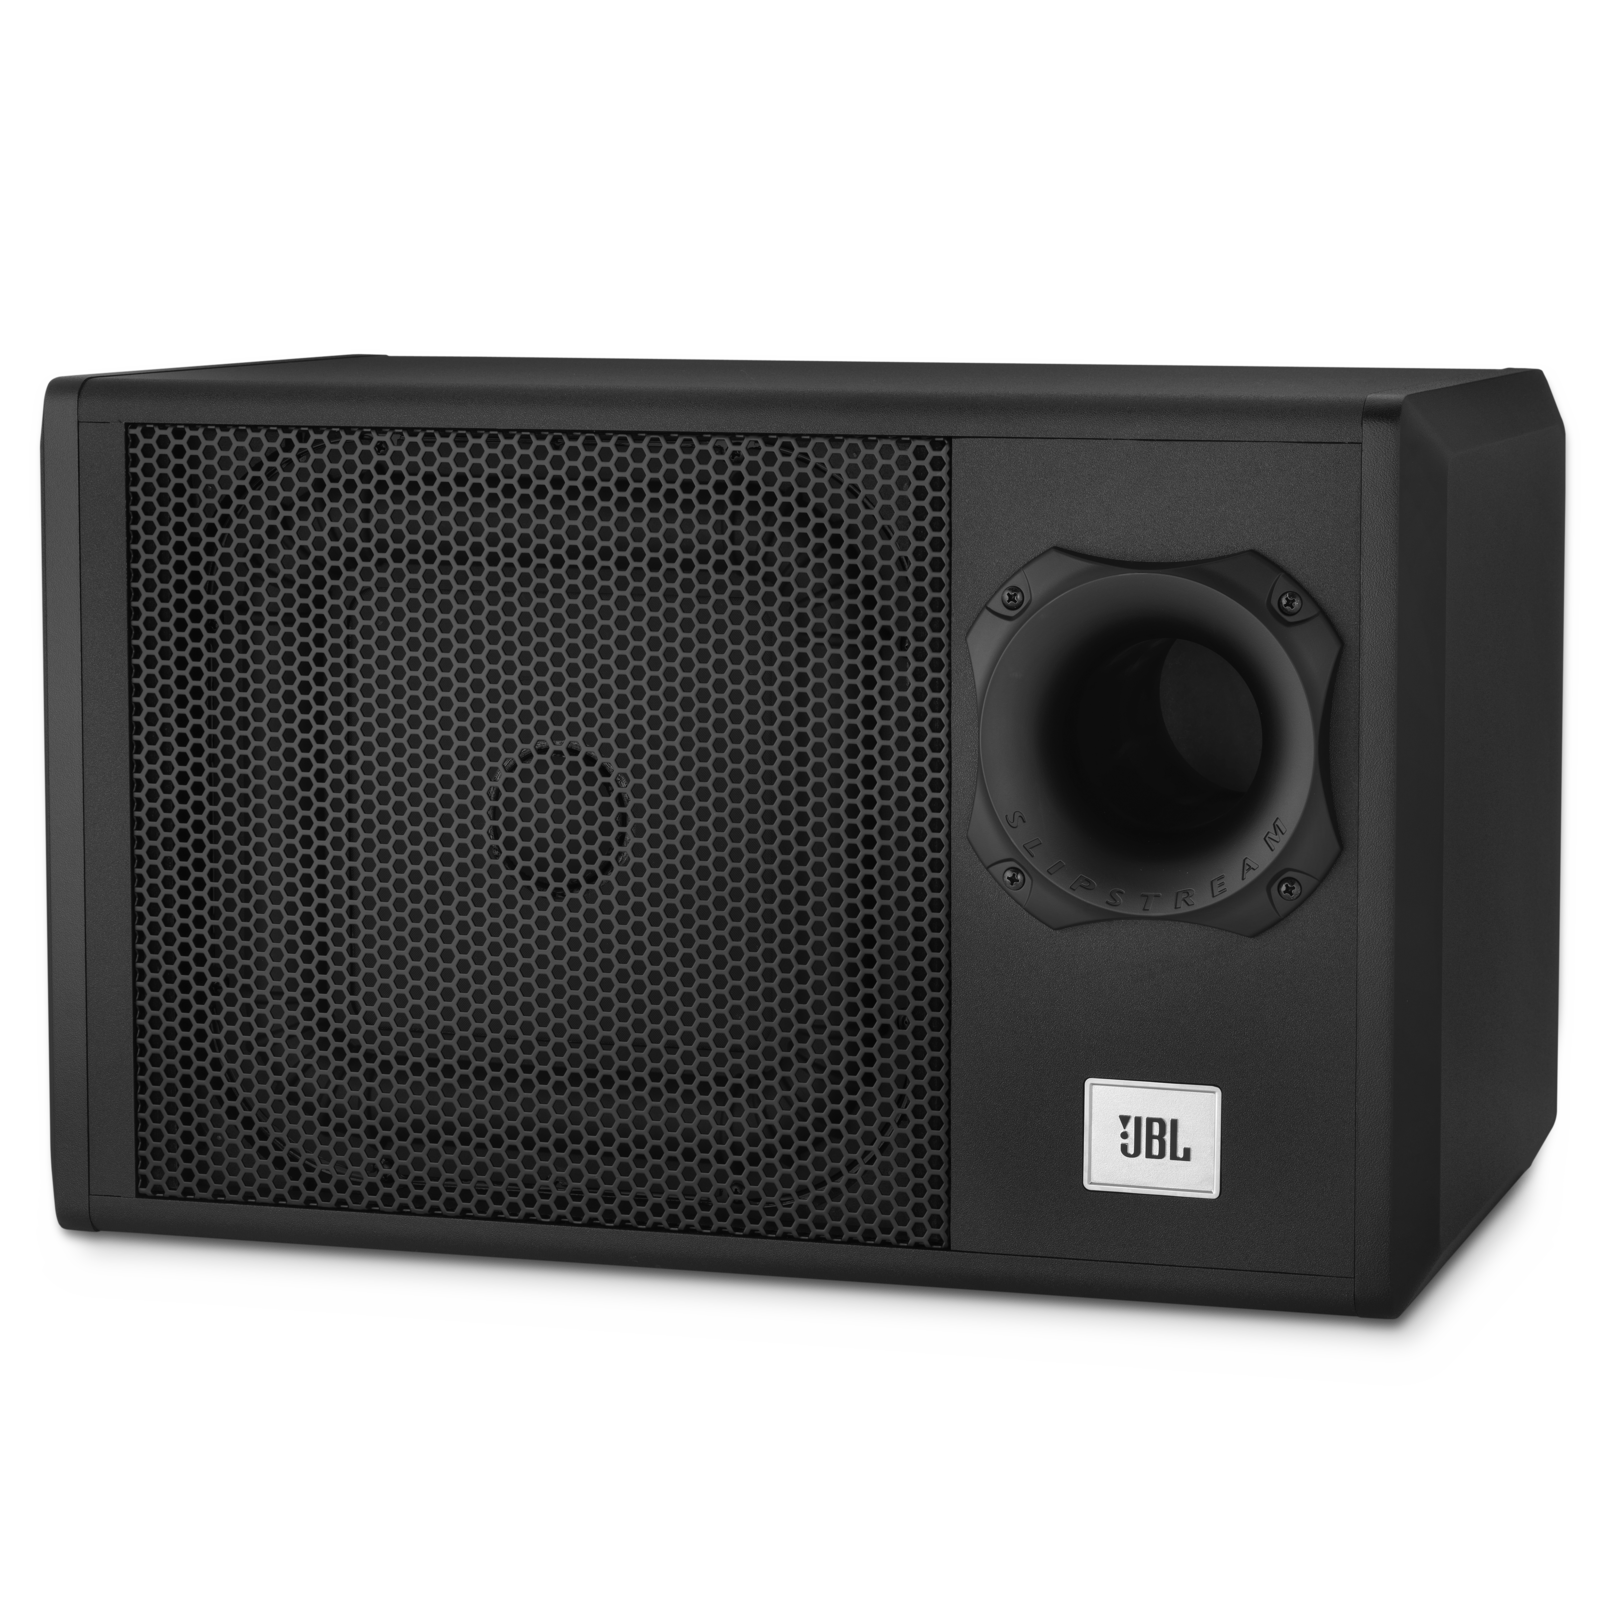 Sub JBL - MS BassPro SQ (New)